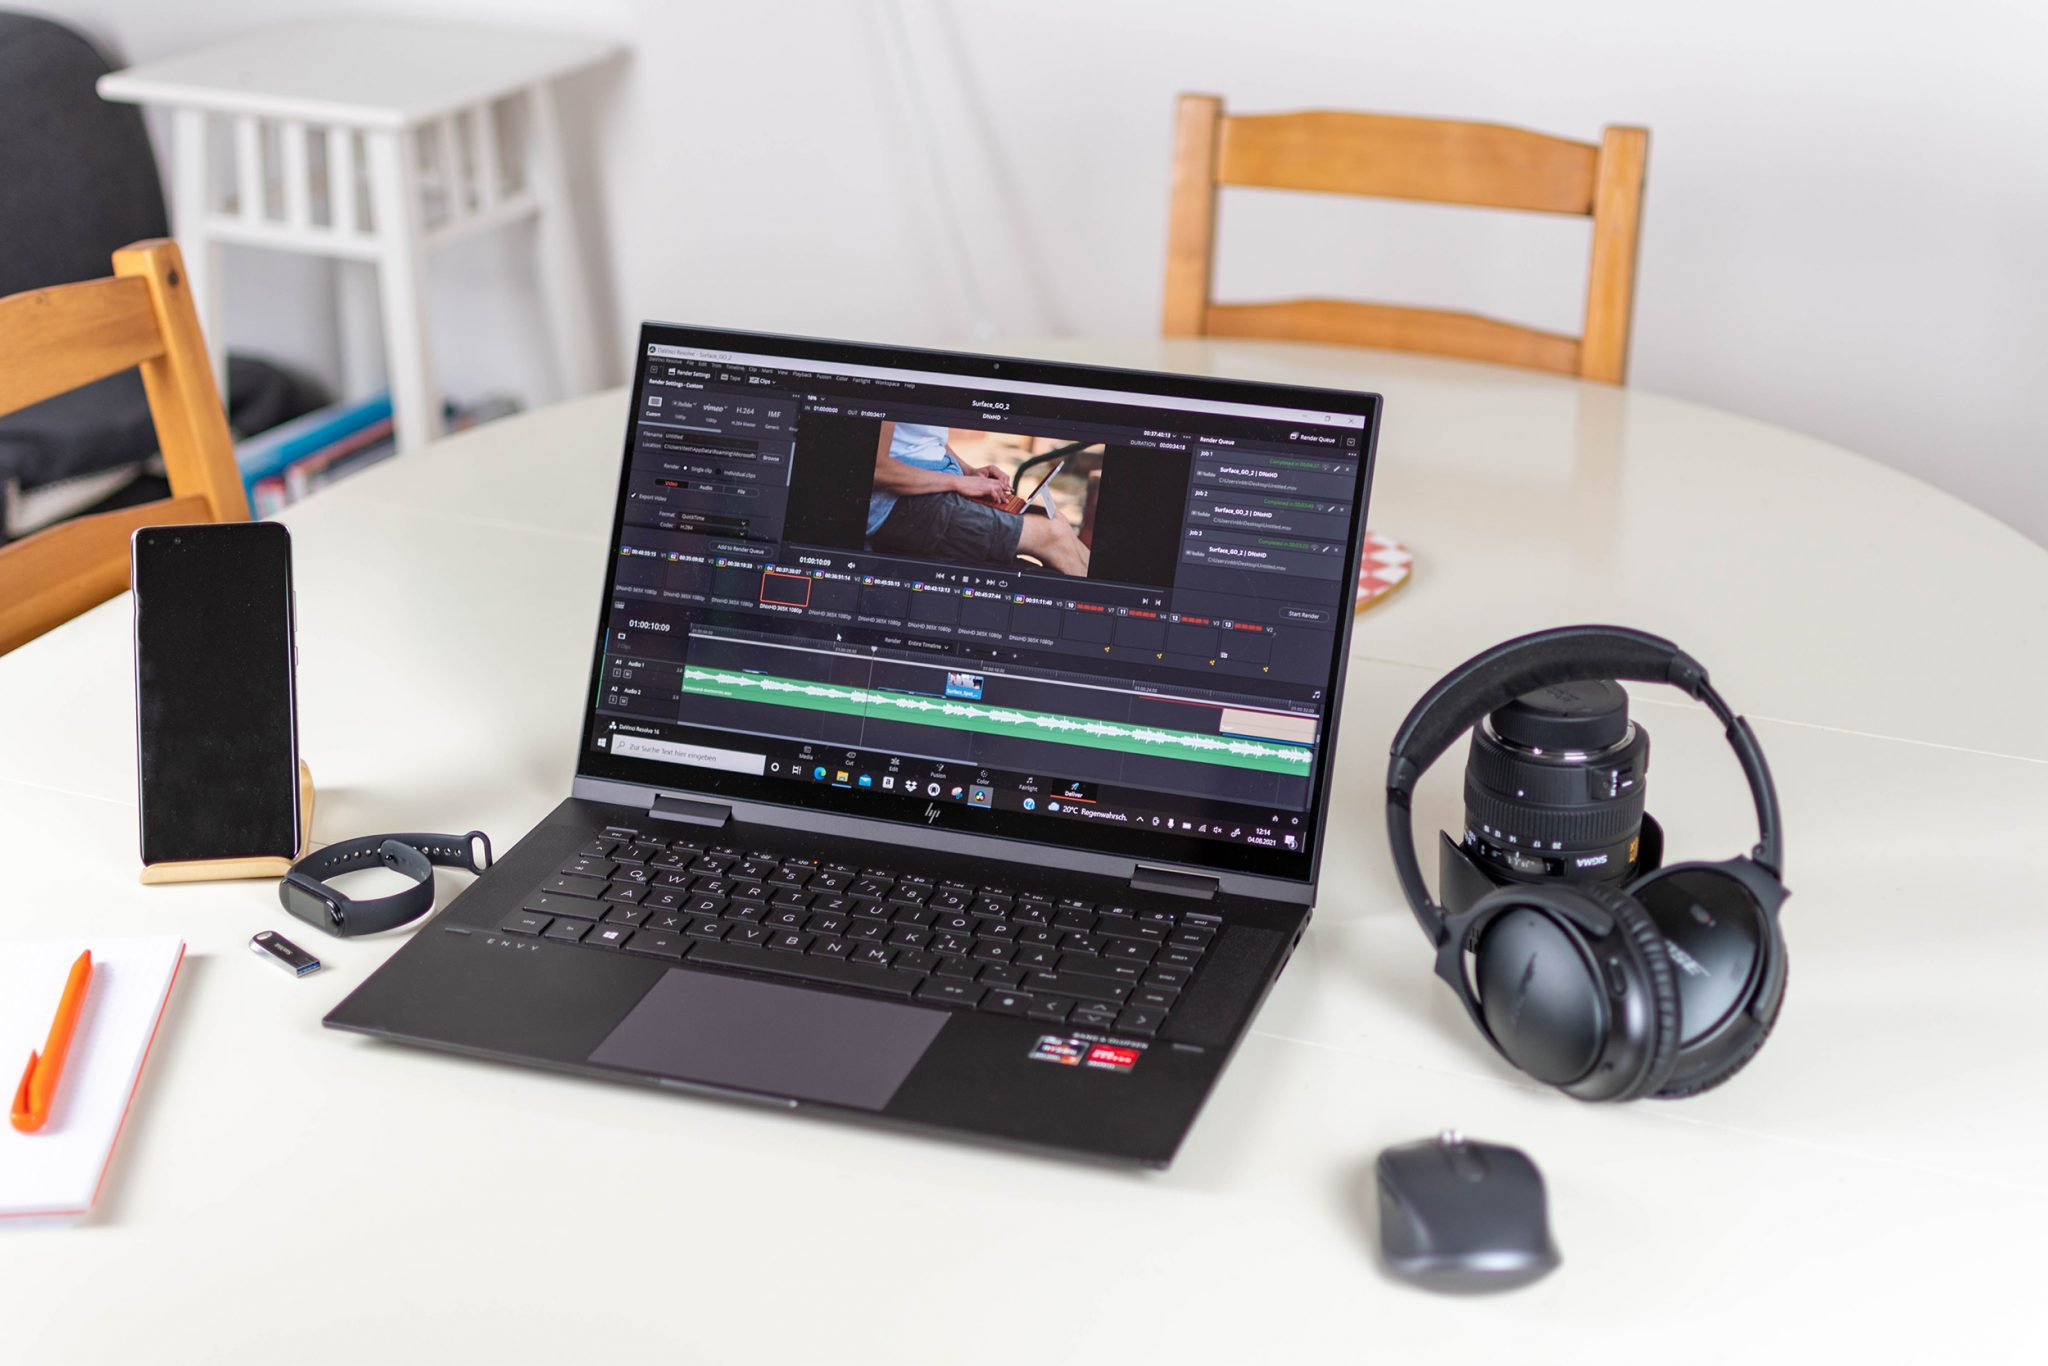 hp envy x360 15-0178ng convertible with amd ryzen 7 and large ssd in the test